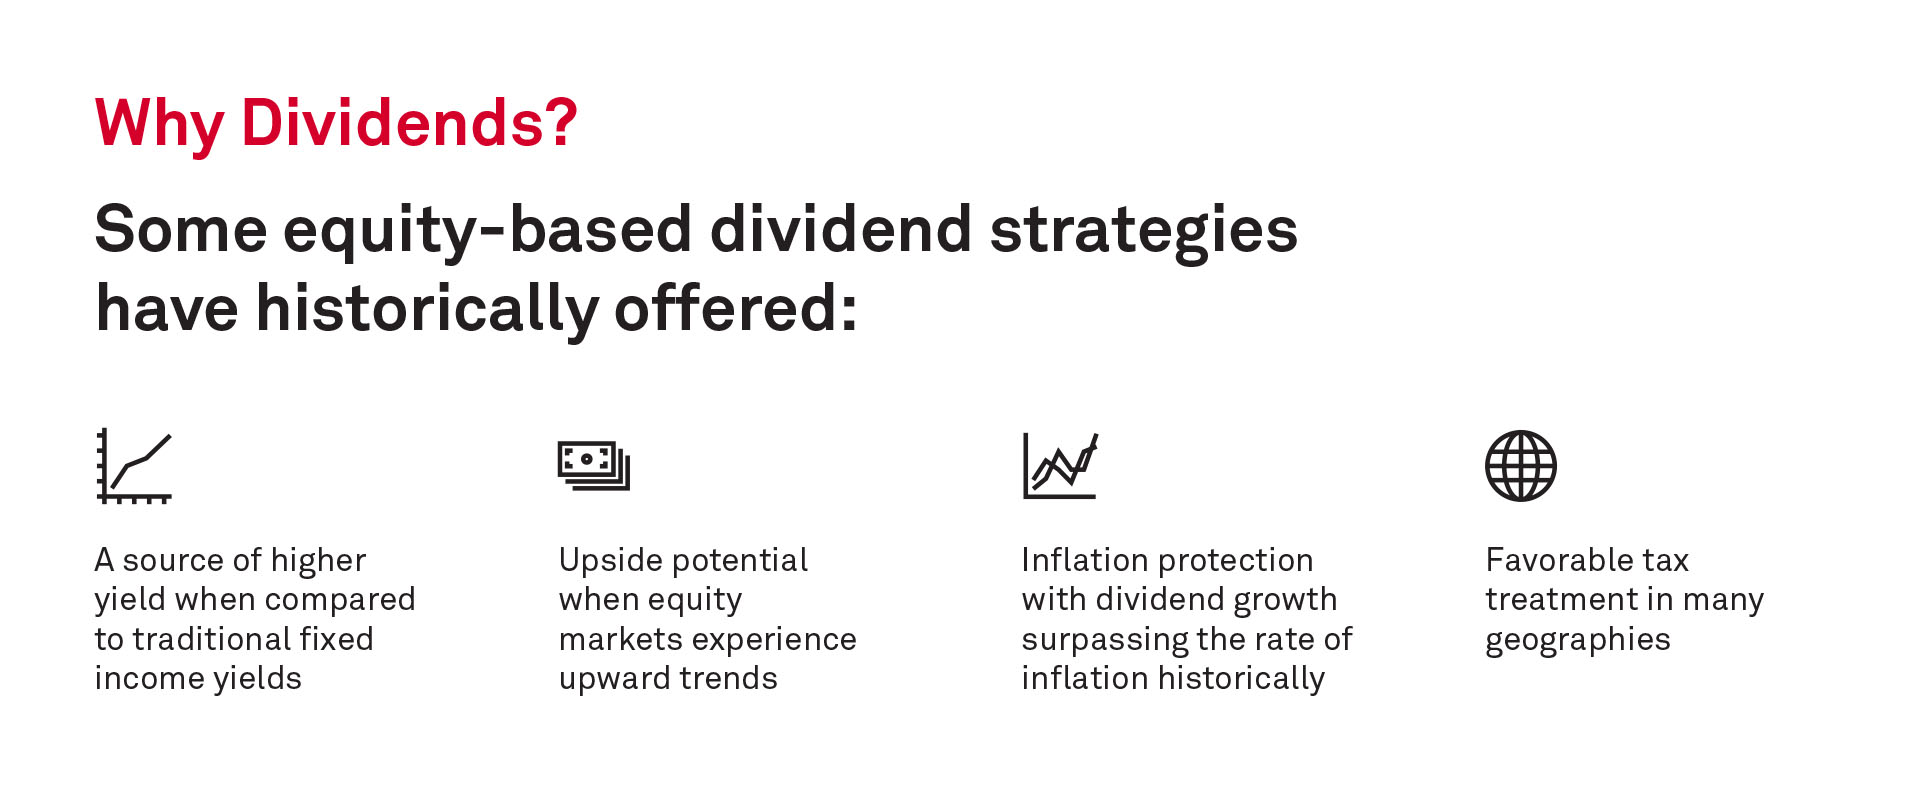 Why Dividends?